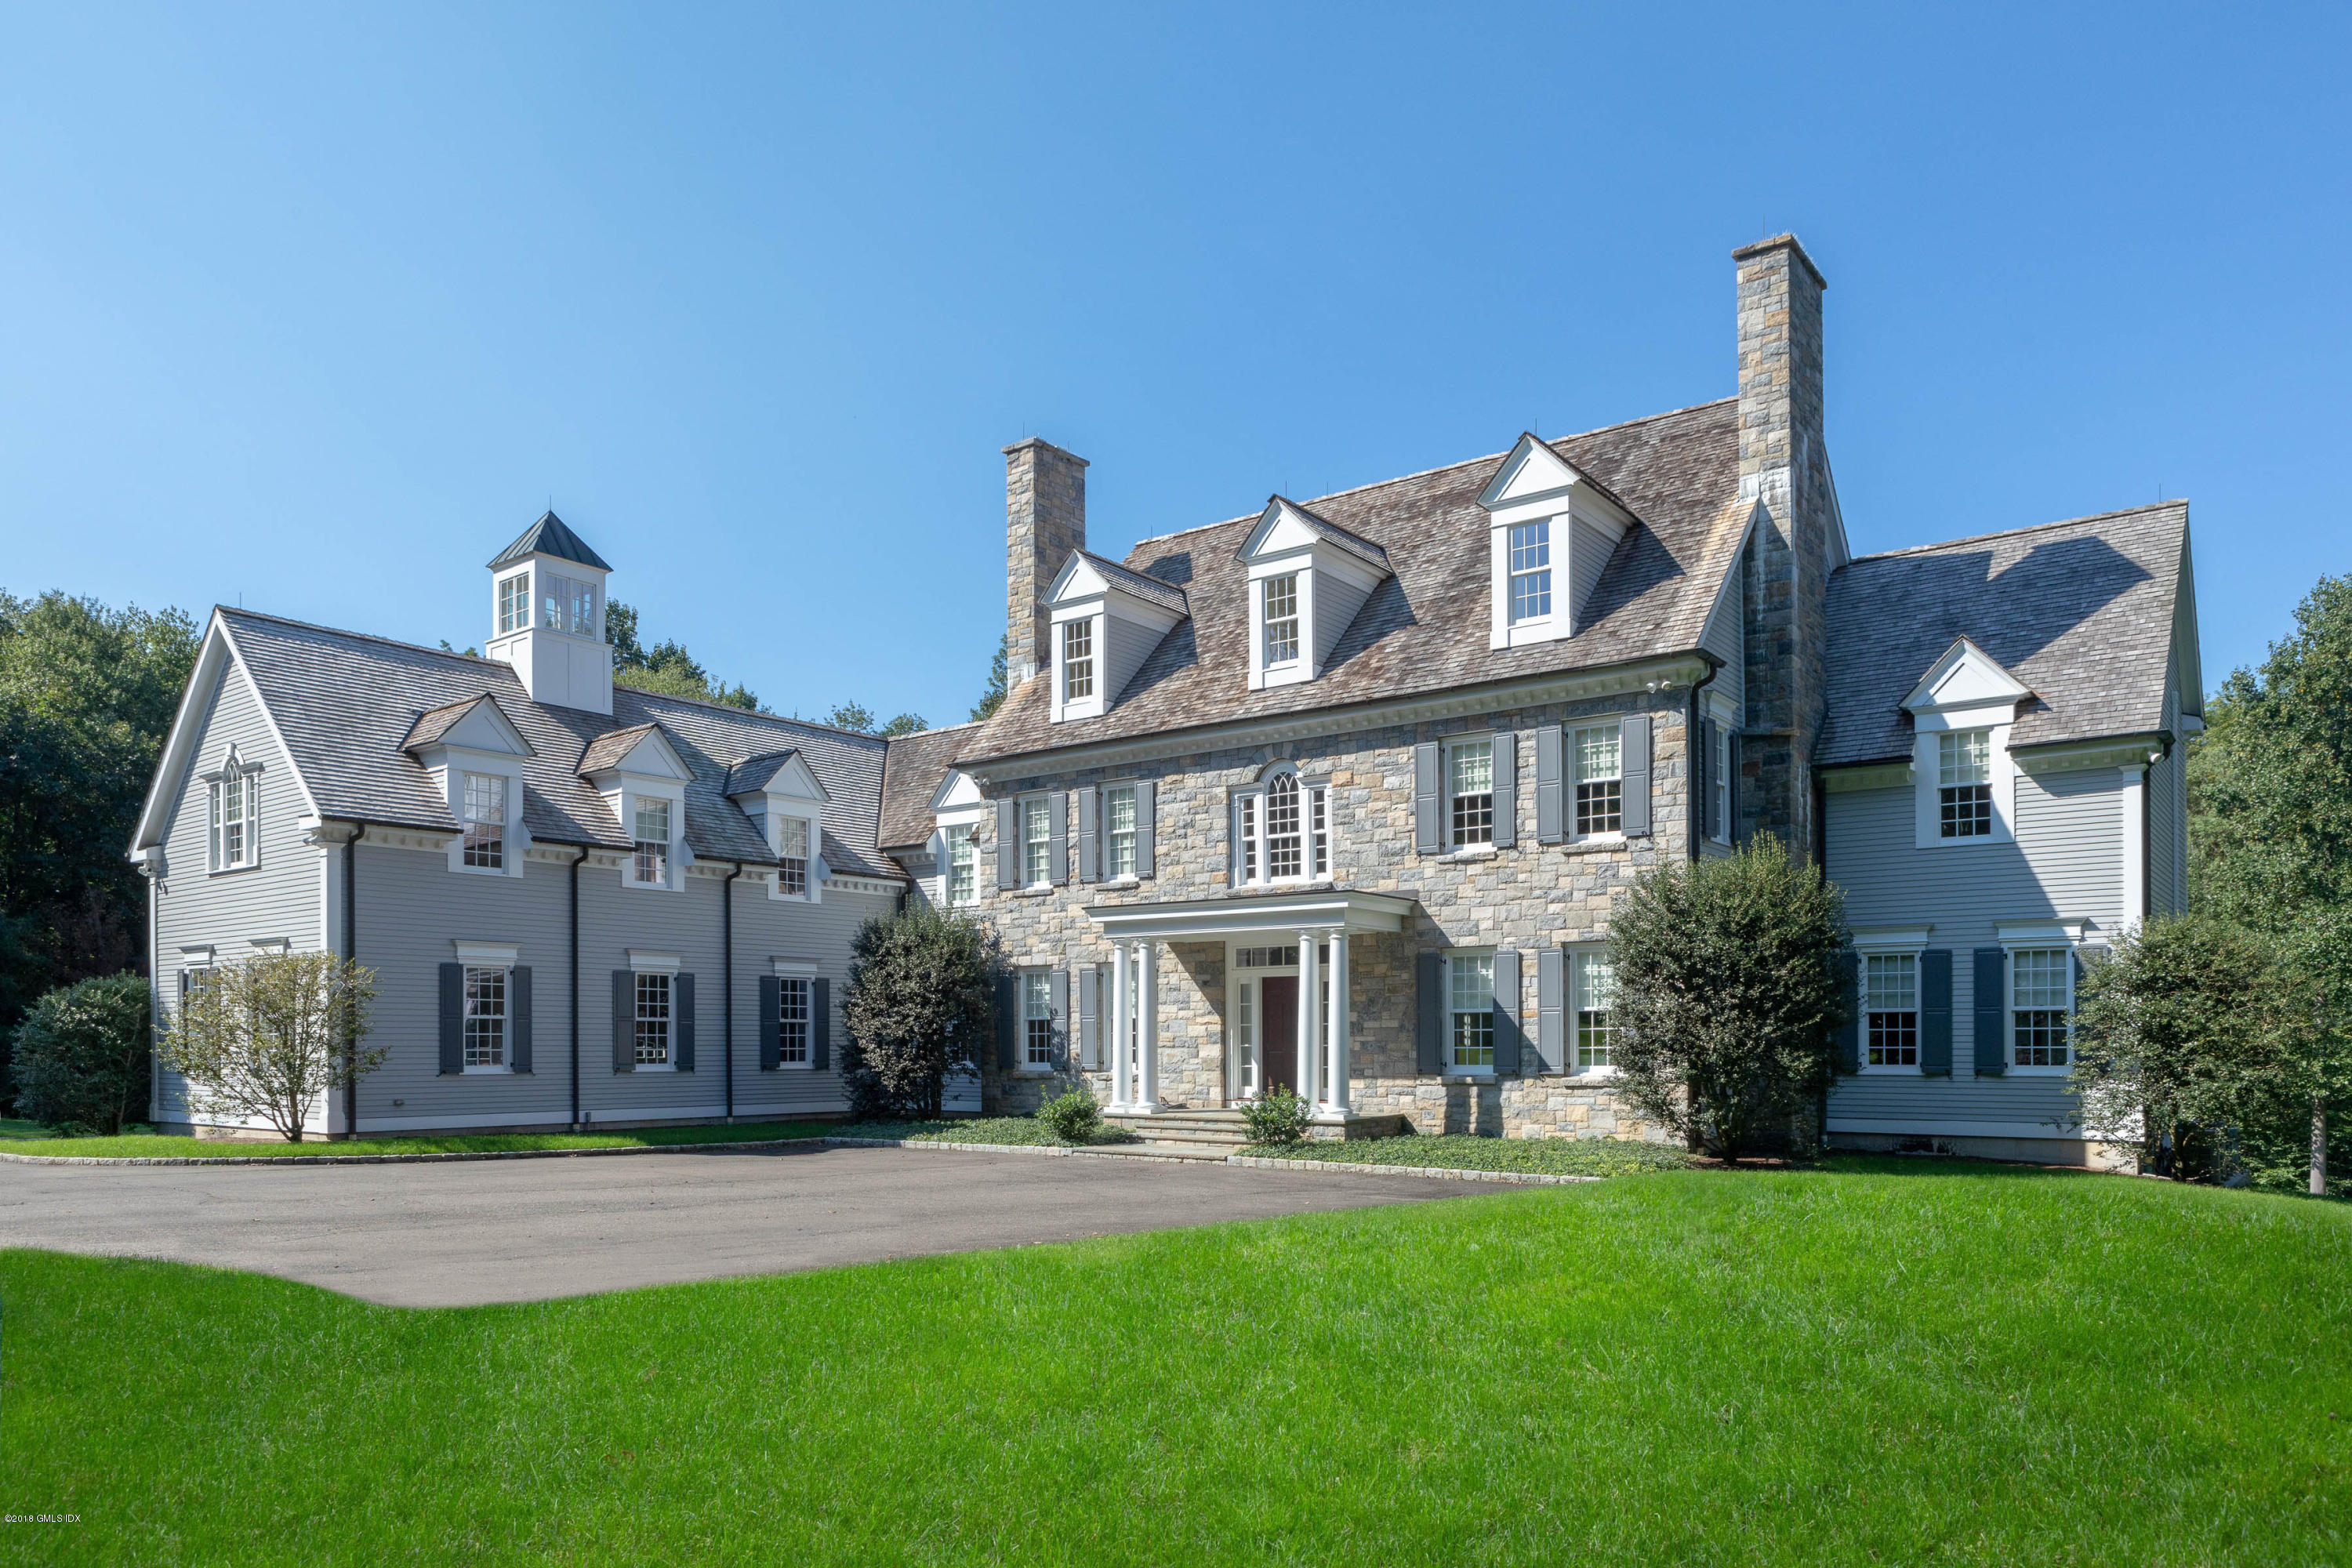 70 Old Mill Road,Greenwich,Connecticut 06831,6 Bedrooms Bedrooms,8 BathroomsBathrooms,Single family,Old Mill,108654